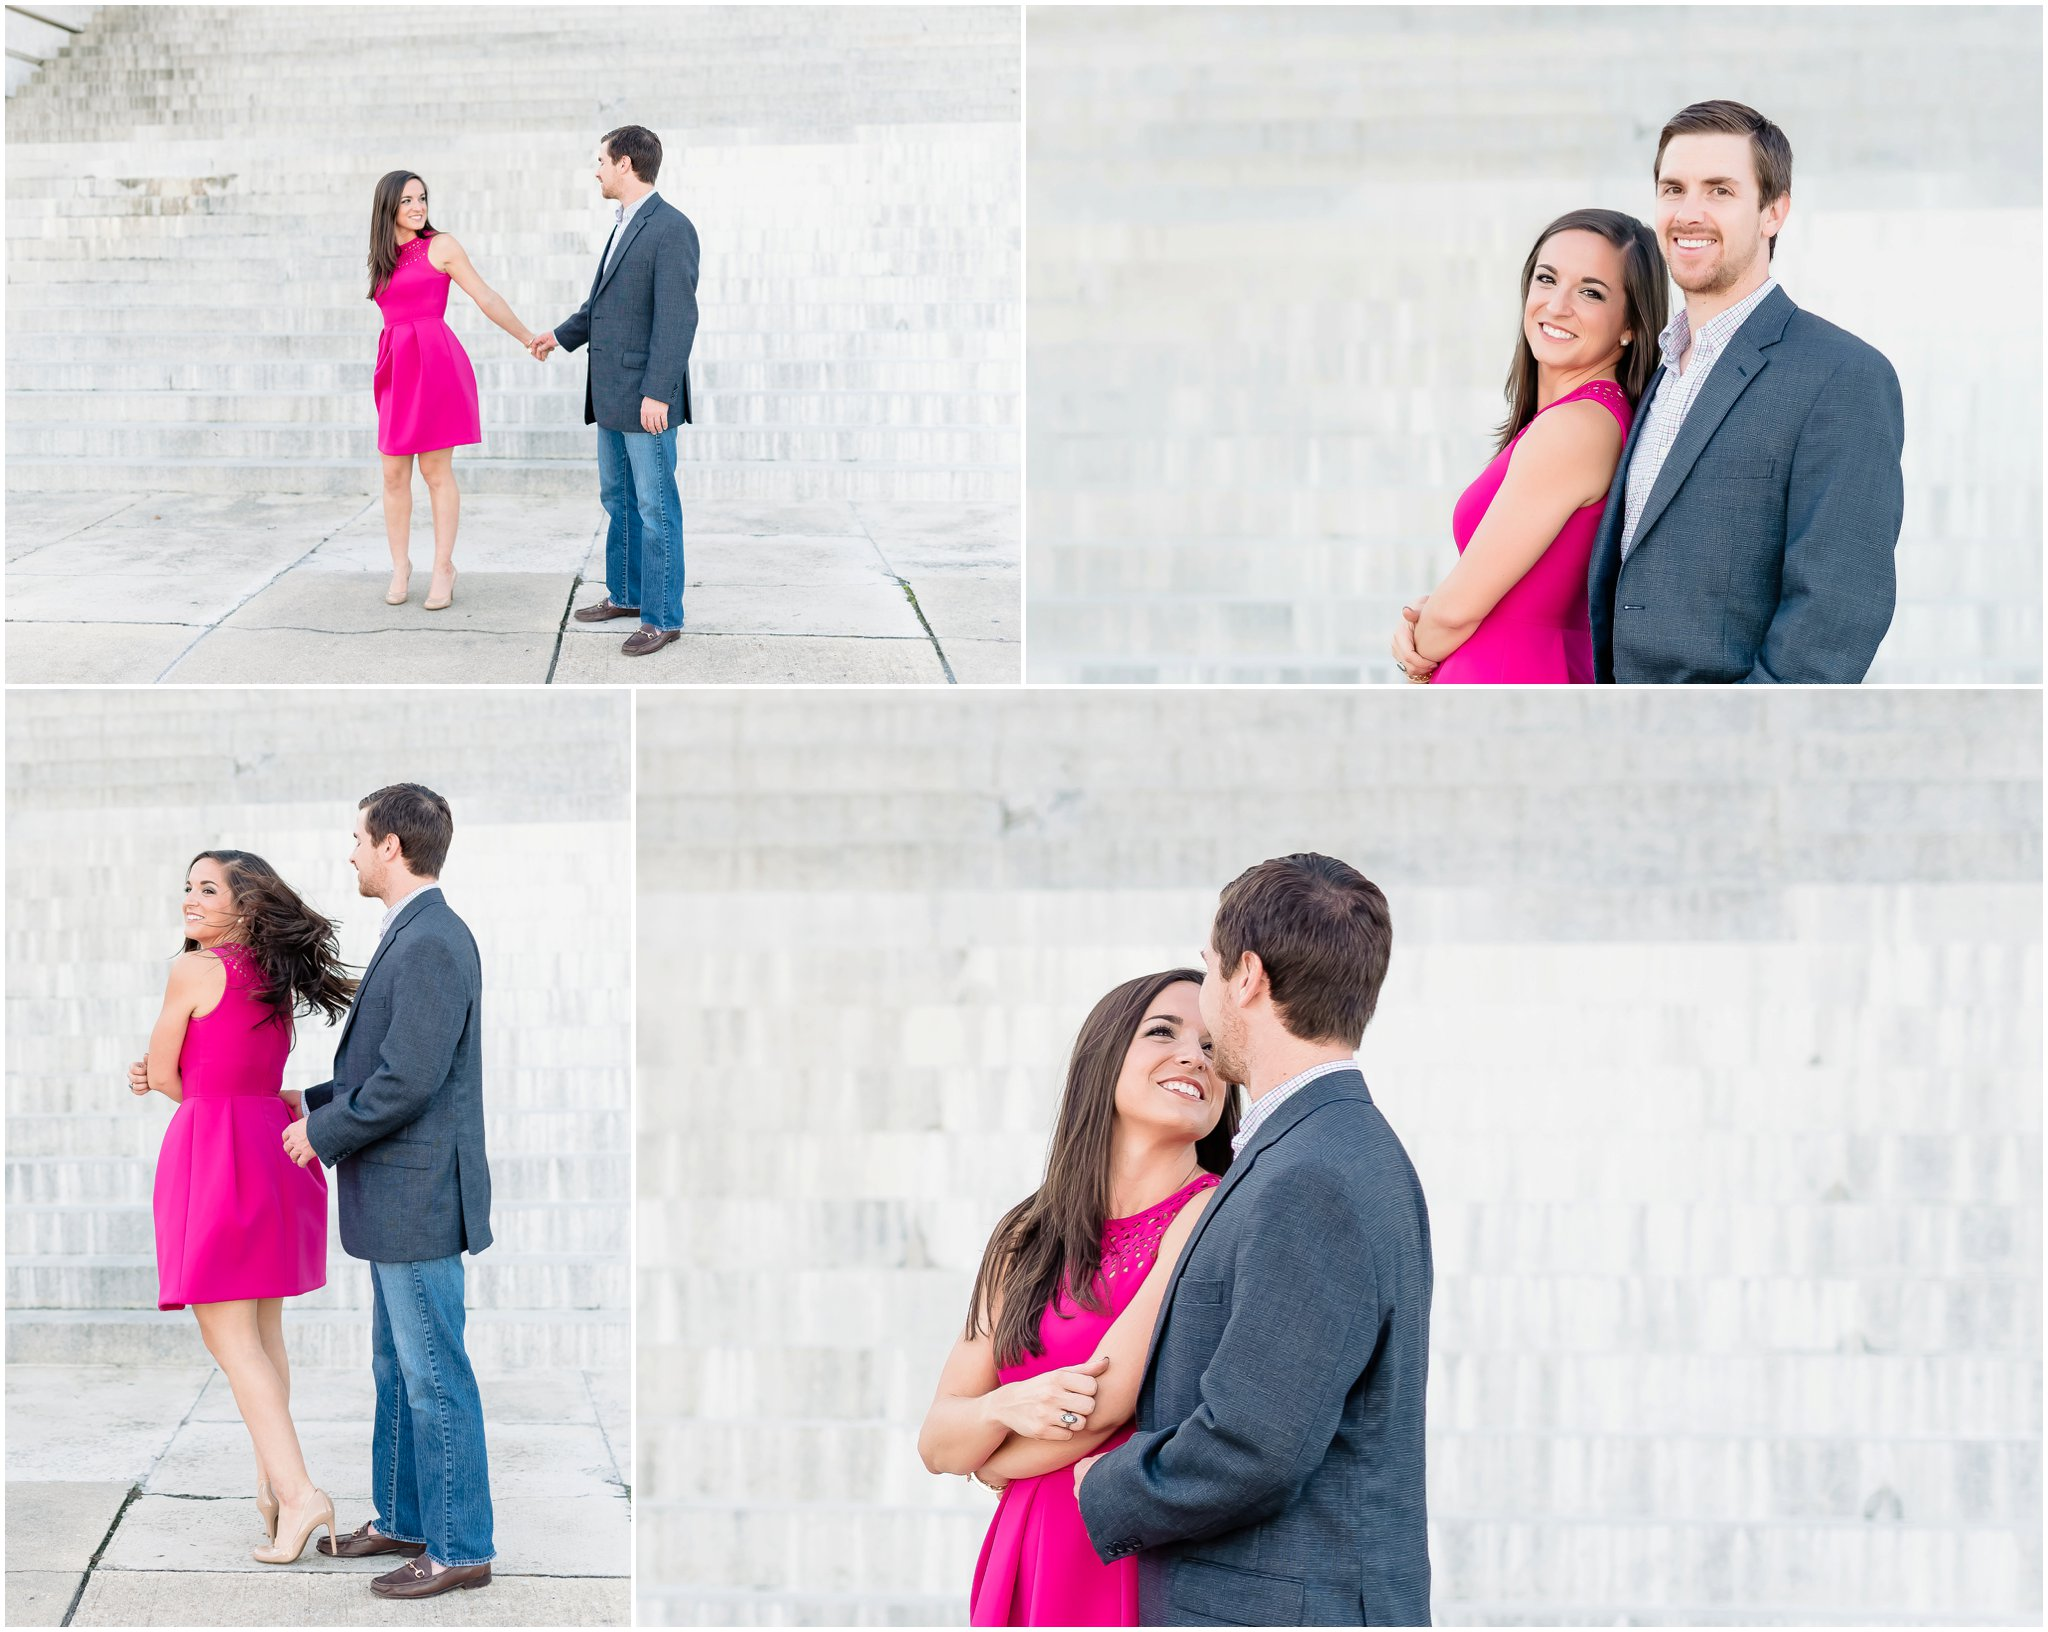 Natural, fun, silly downtown Engagement Photography, Pink fuchsia dress | Charleston SC Photographer